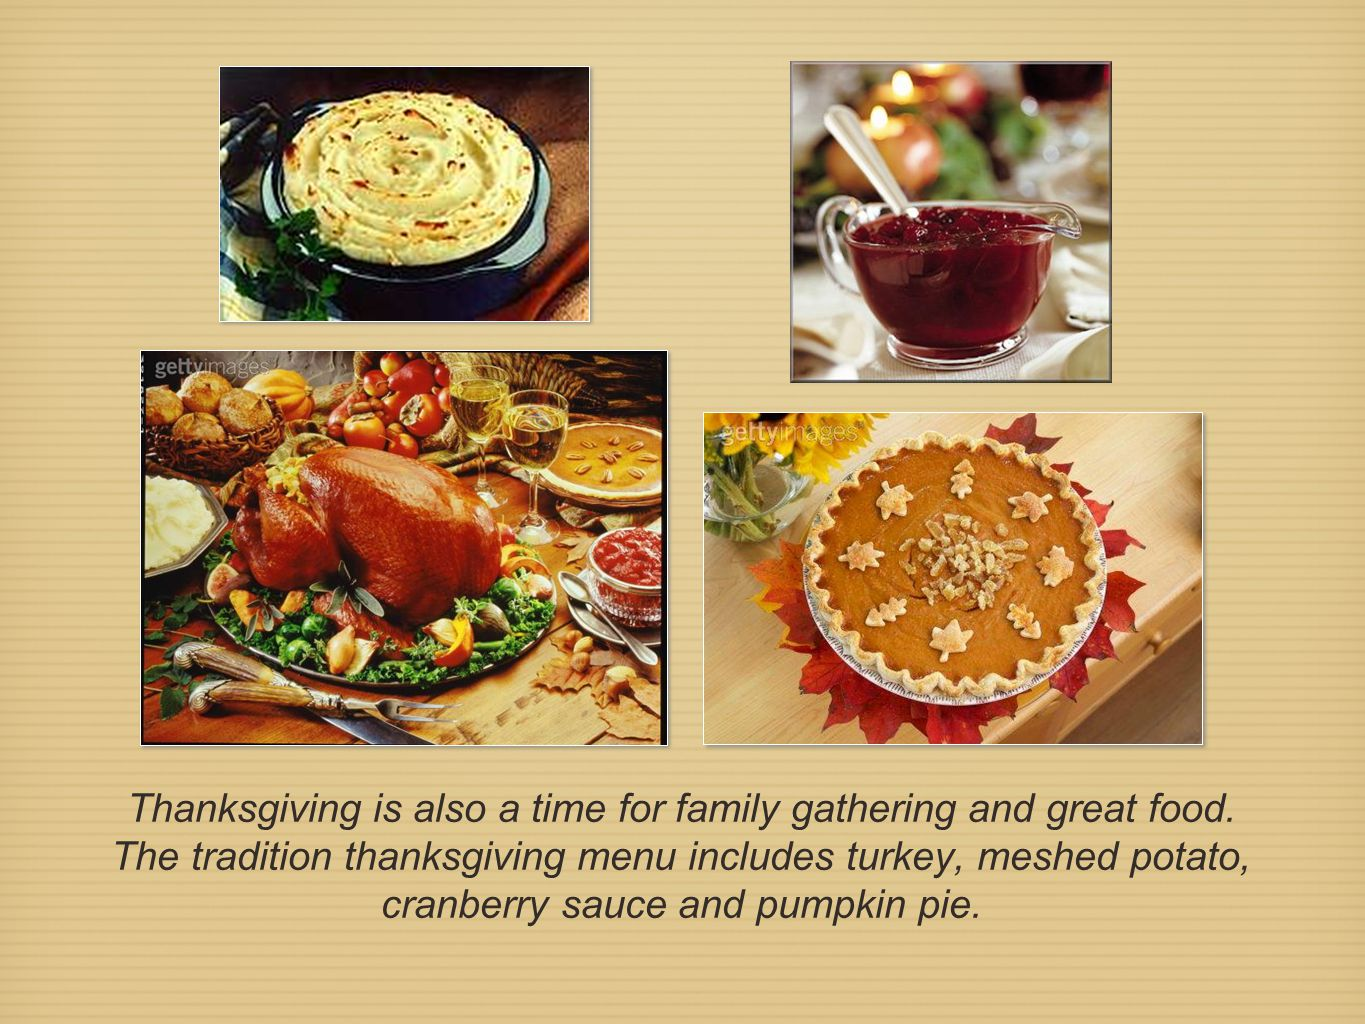 Thanksgiving is also a time for family gathering and great food.